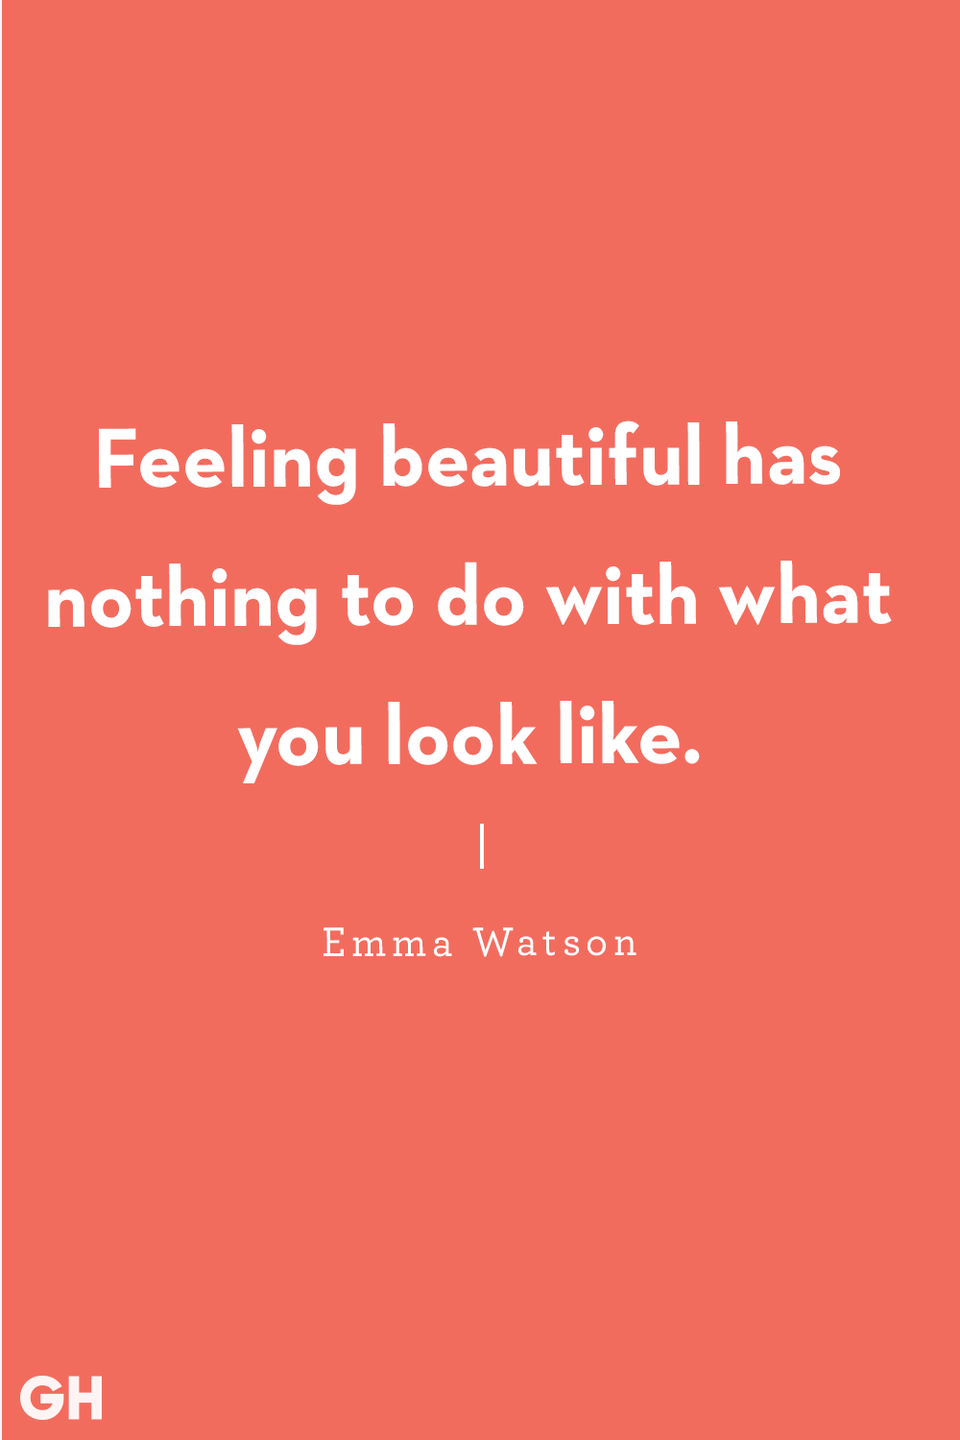 "<p>""Feeling beautiful has nothing to do with what you look like."" </p>"